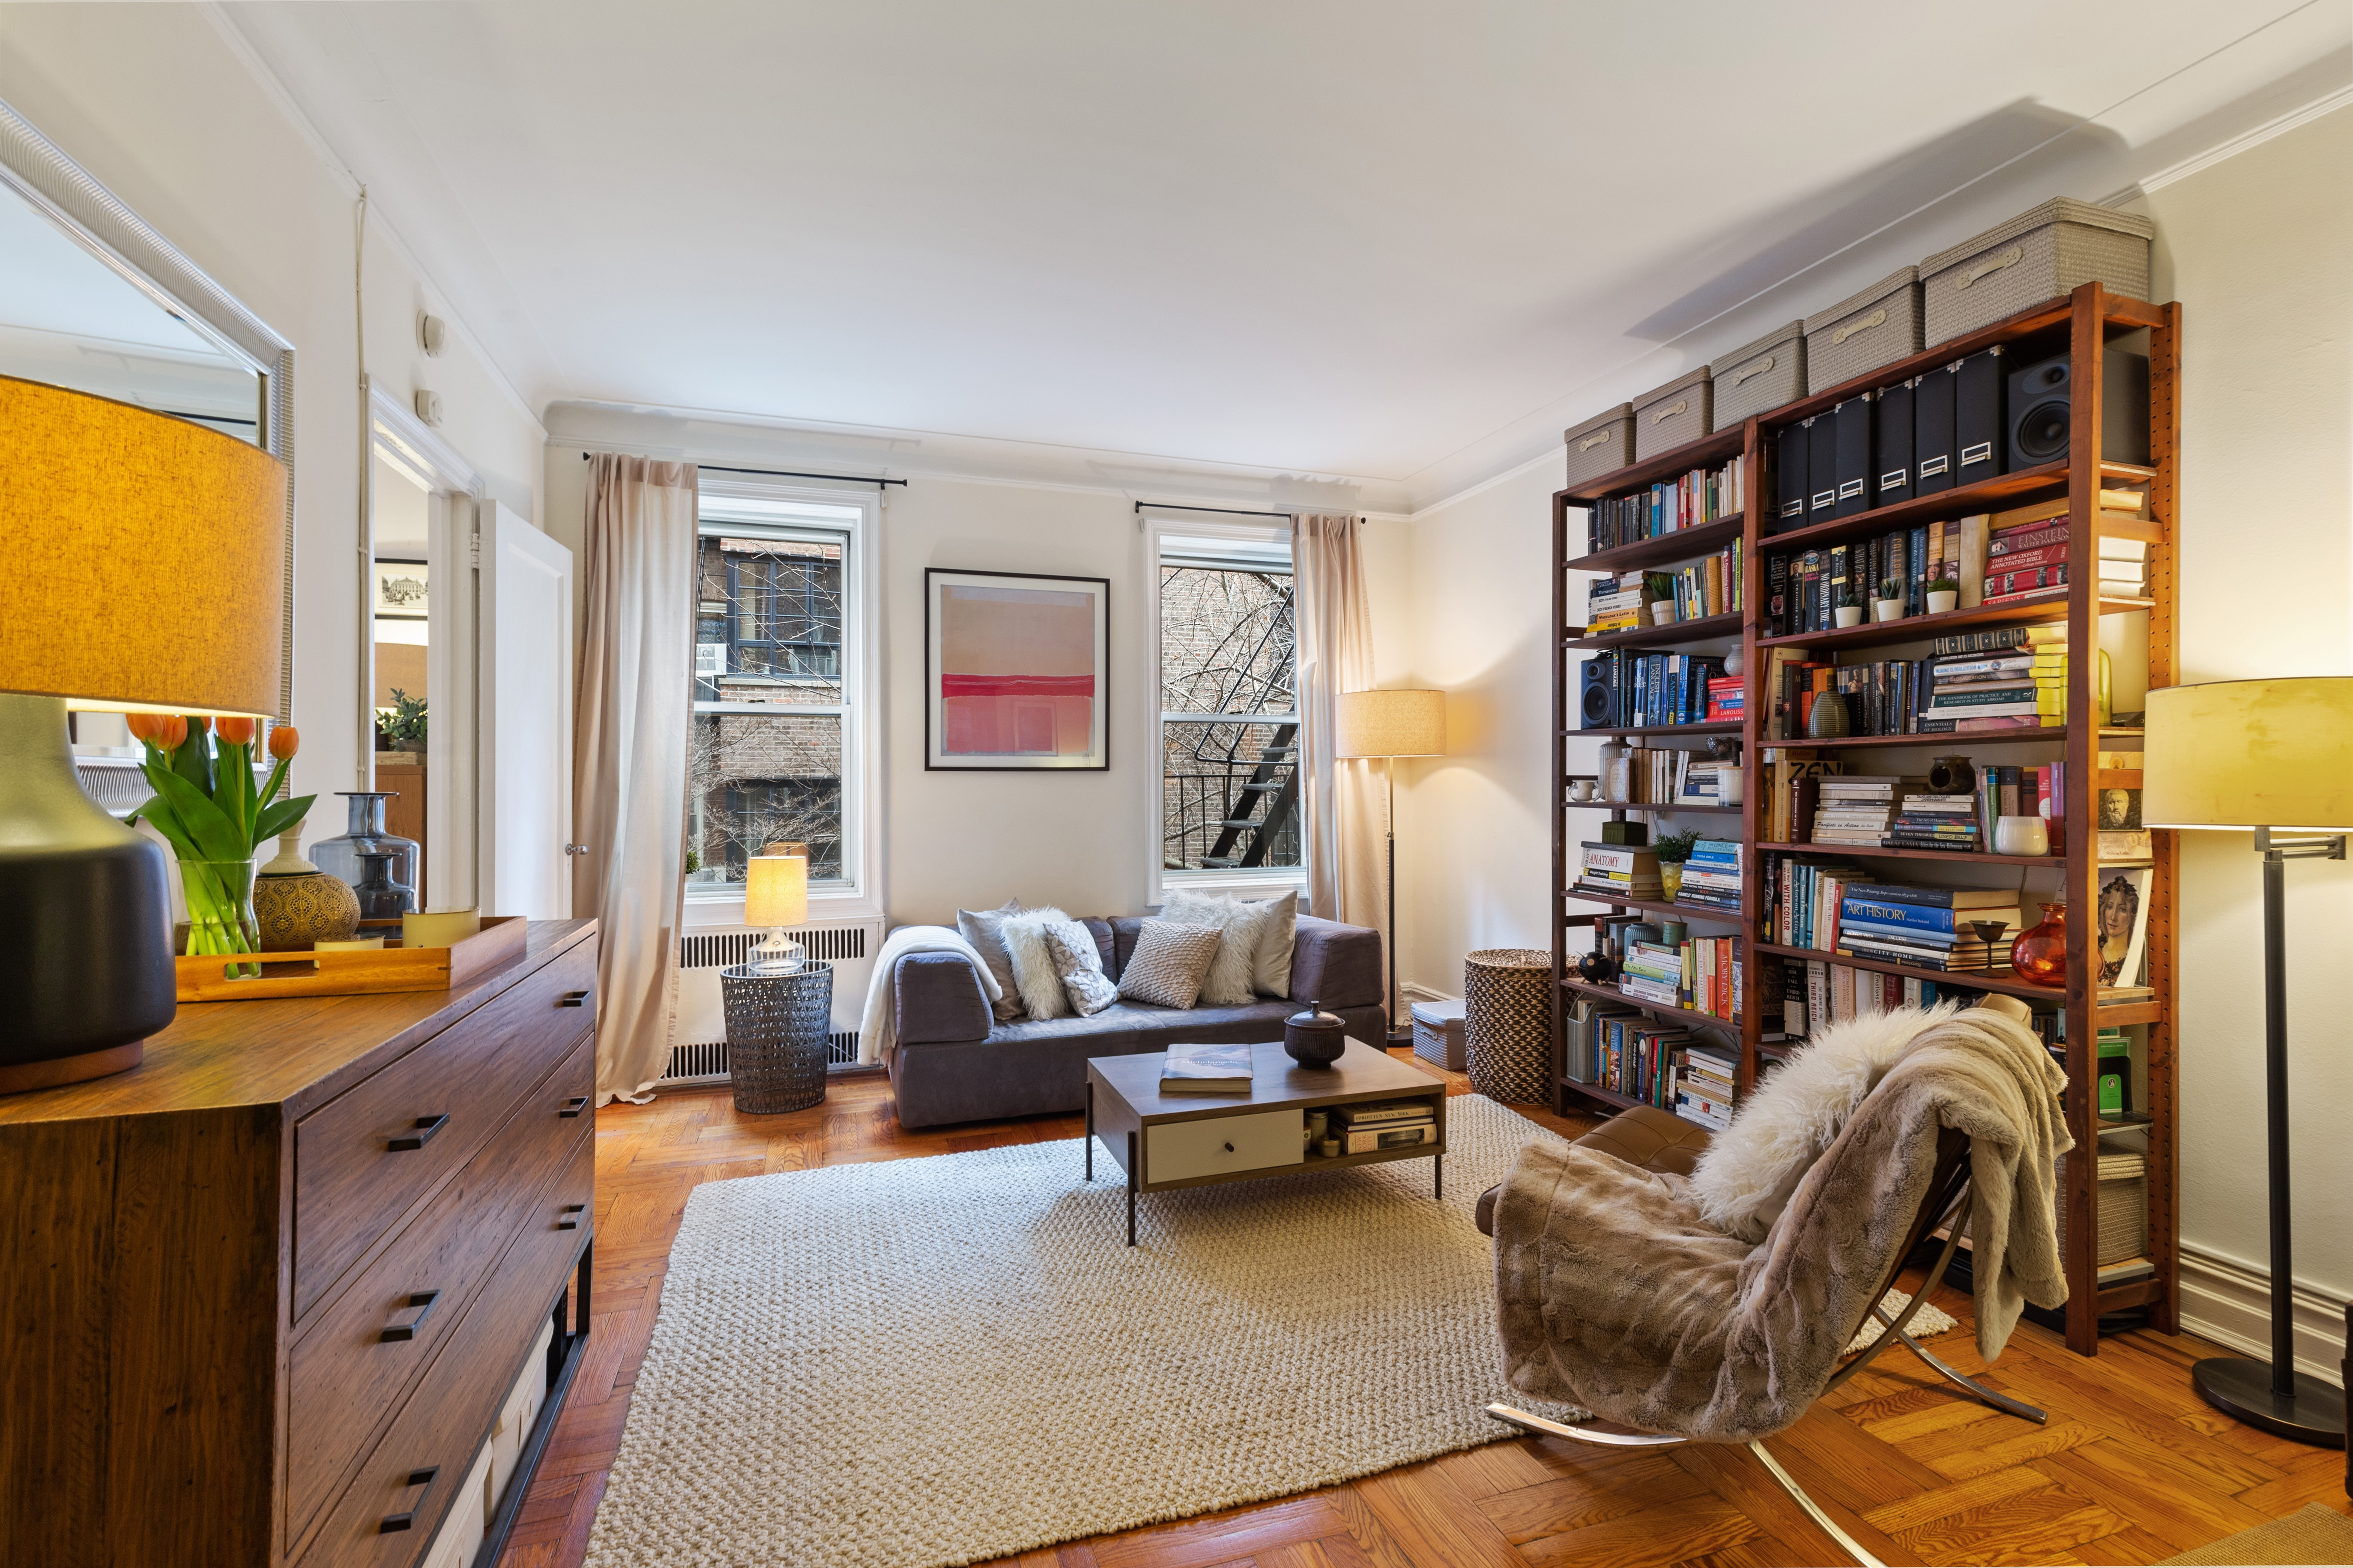 A living room with hardwood floors, a large wooden bookshelf, two windows, a beige rug, and a small couch.